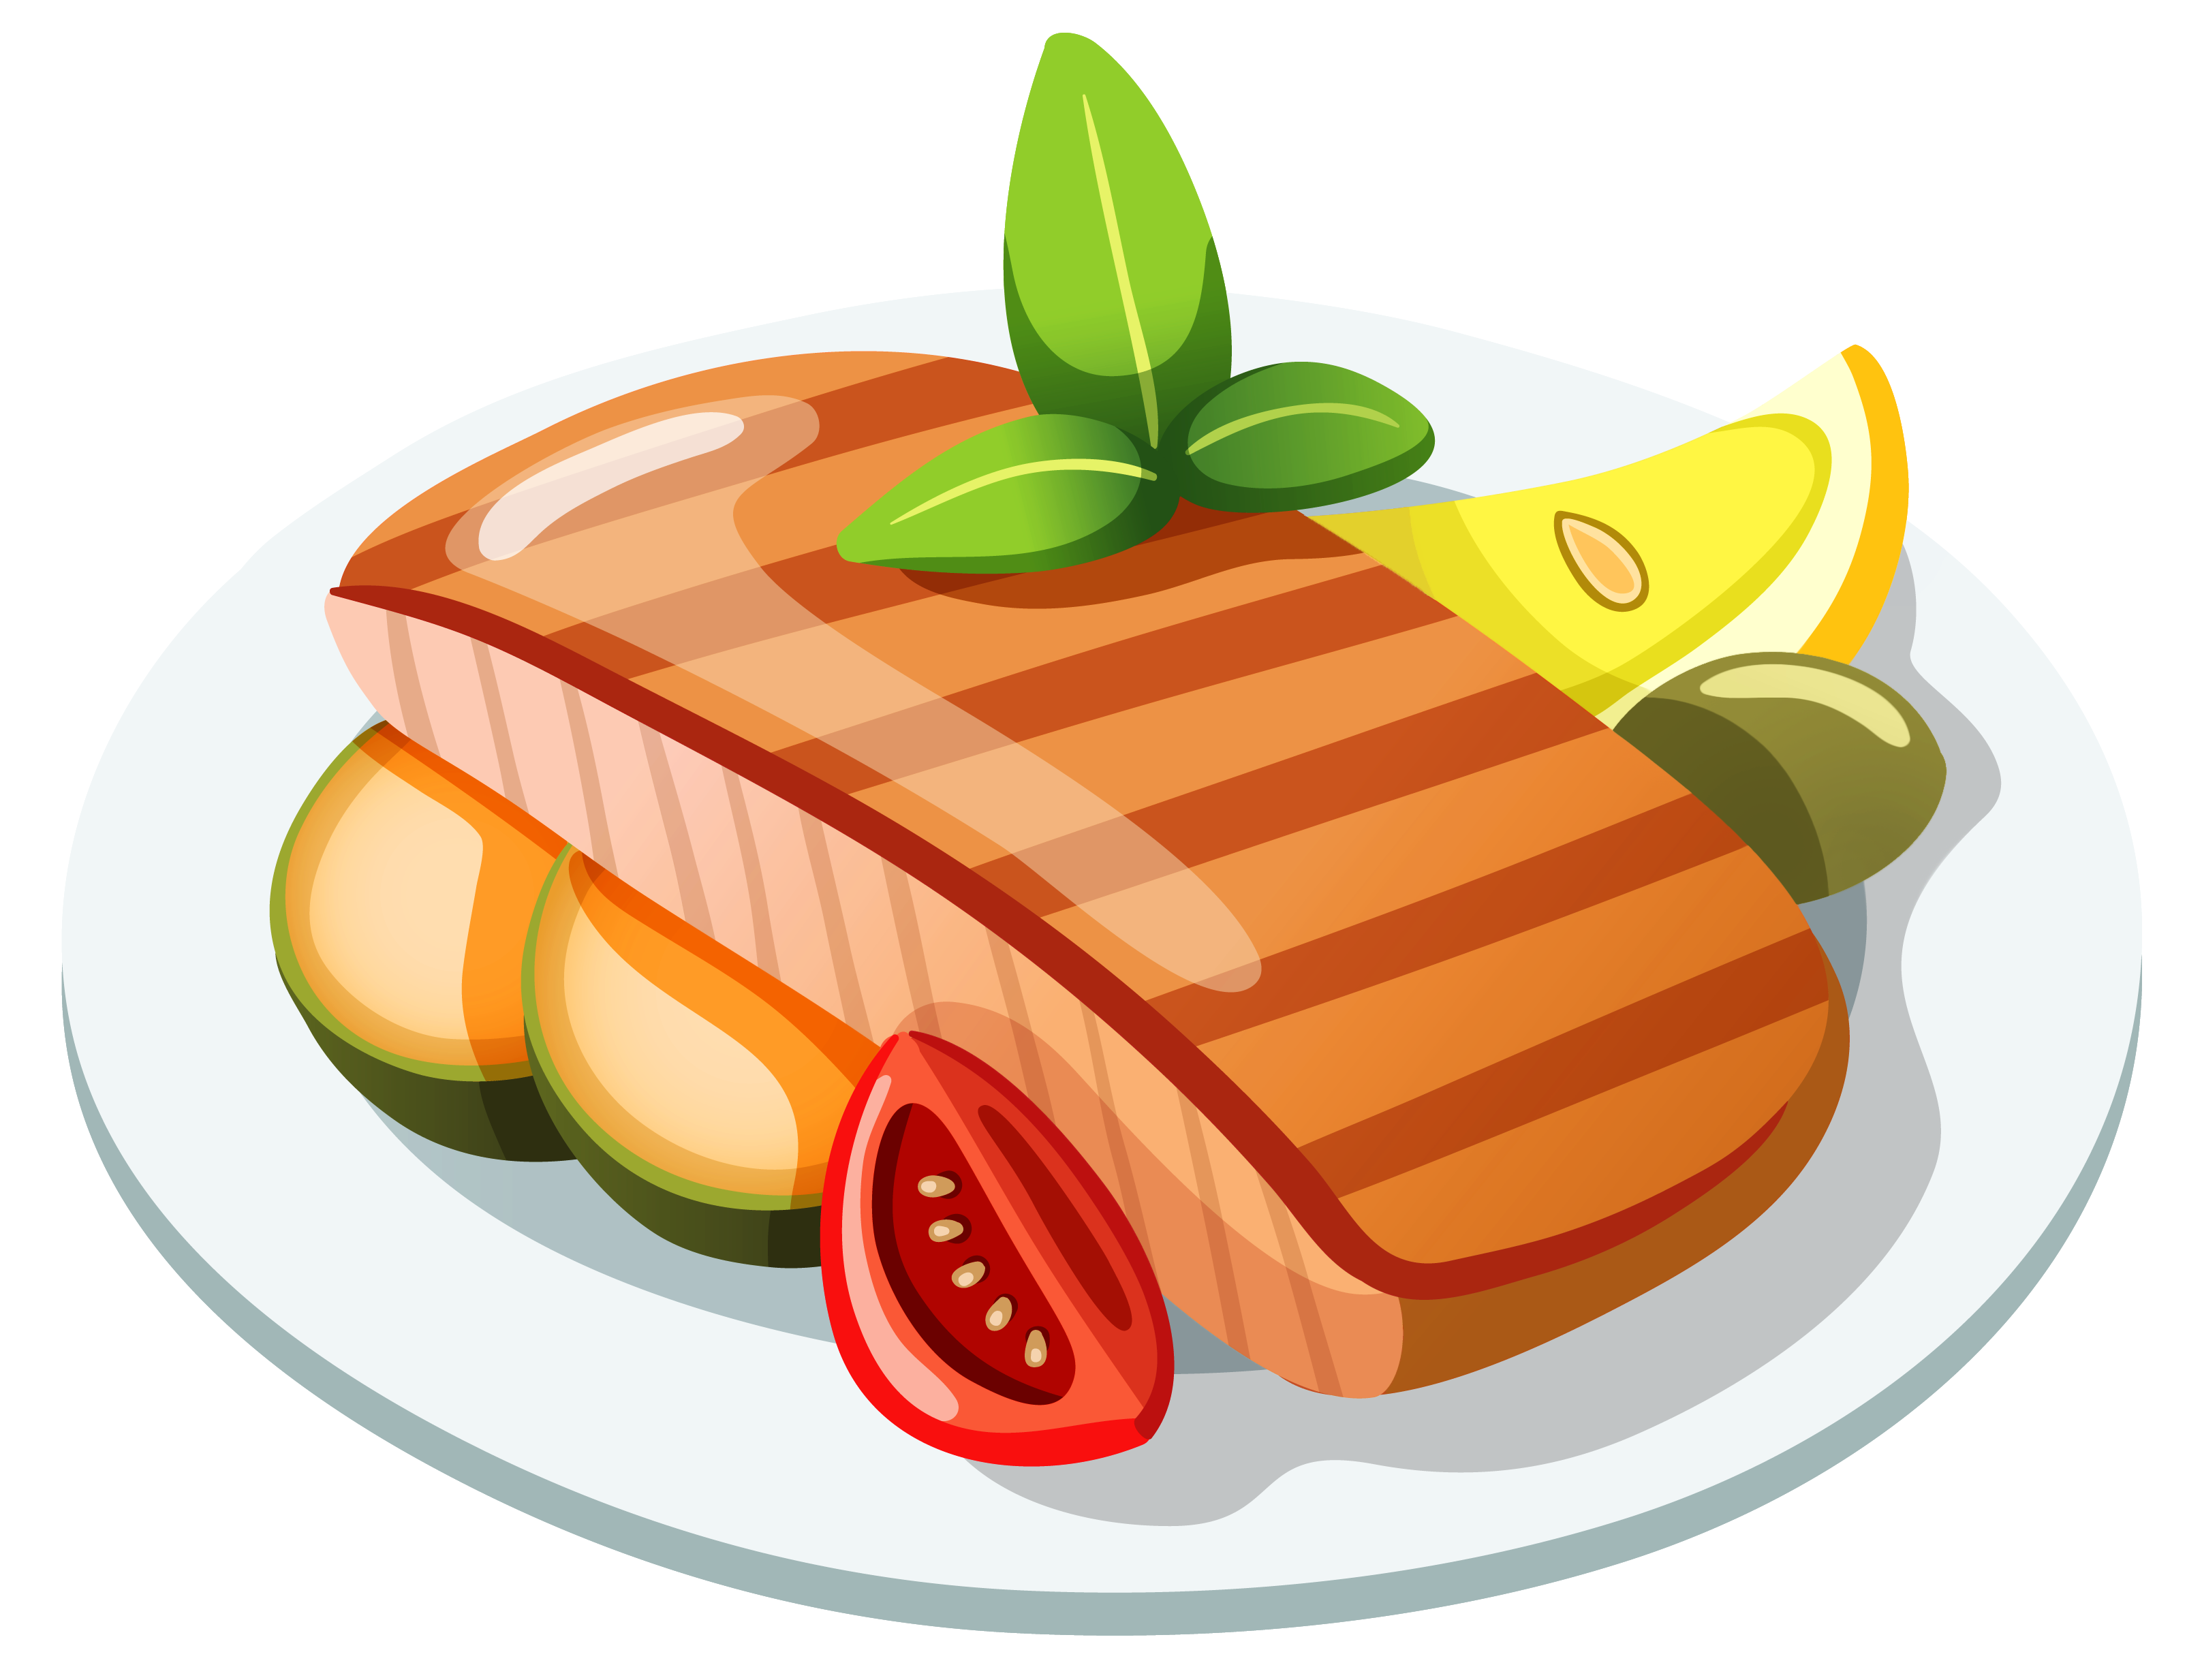 collection of dinner. Feast clipart cooked meat